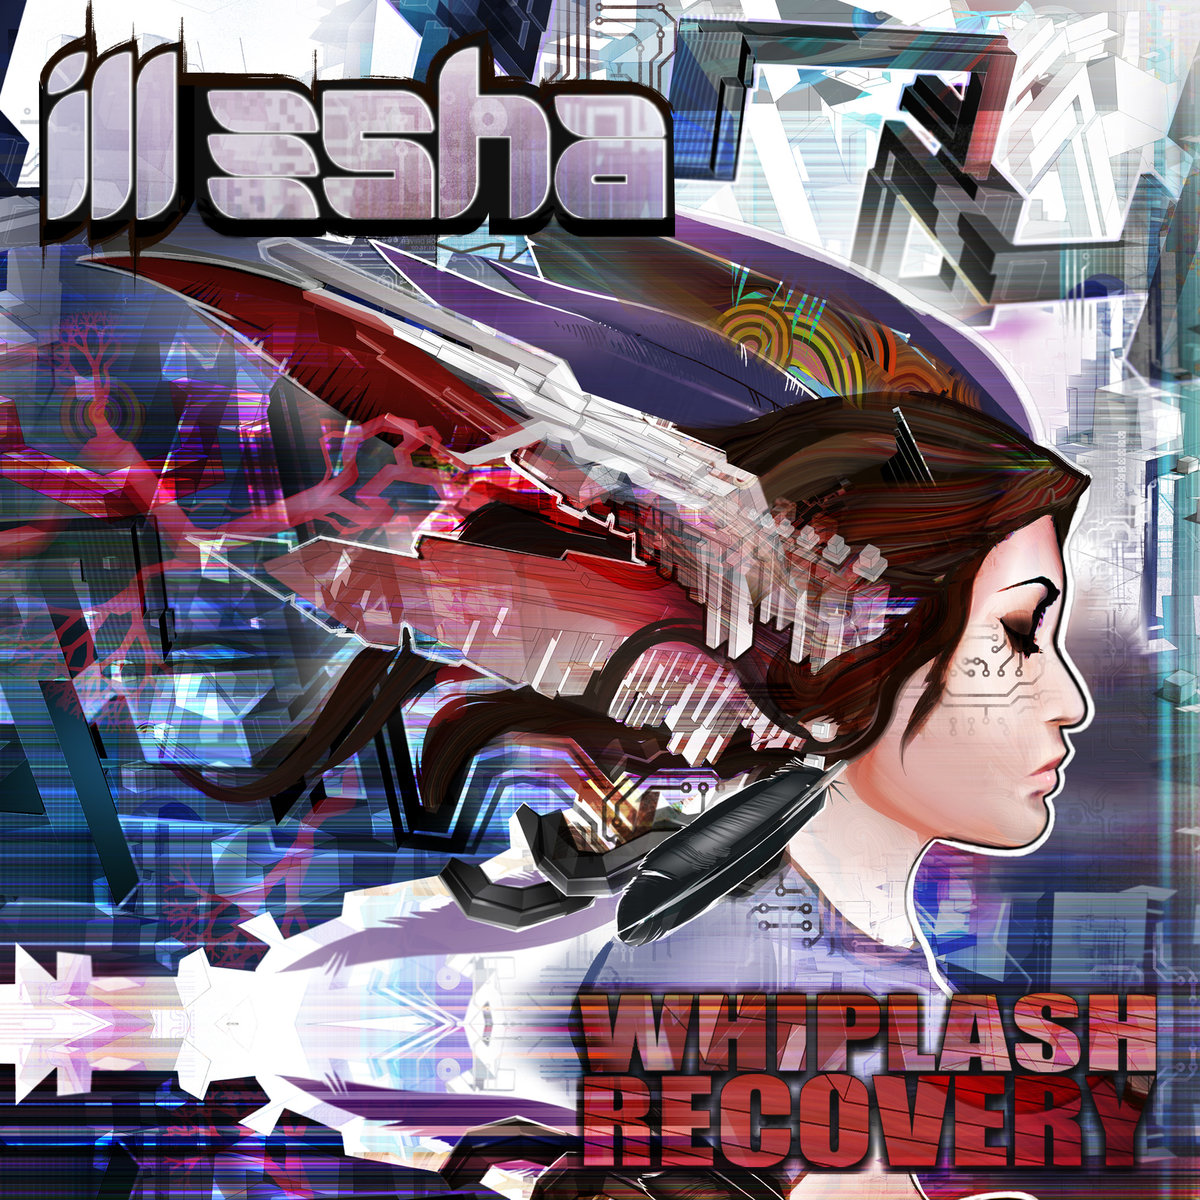 ill-esha - Whiplash Recovery (artwork)